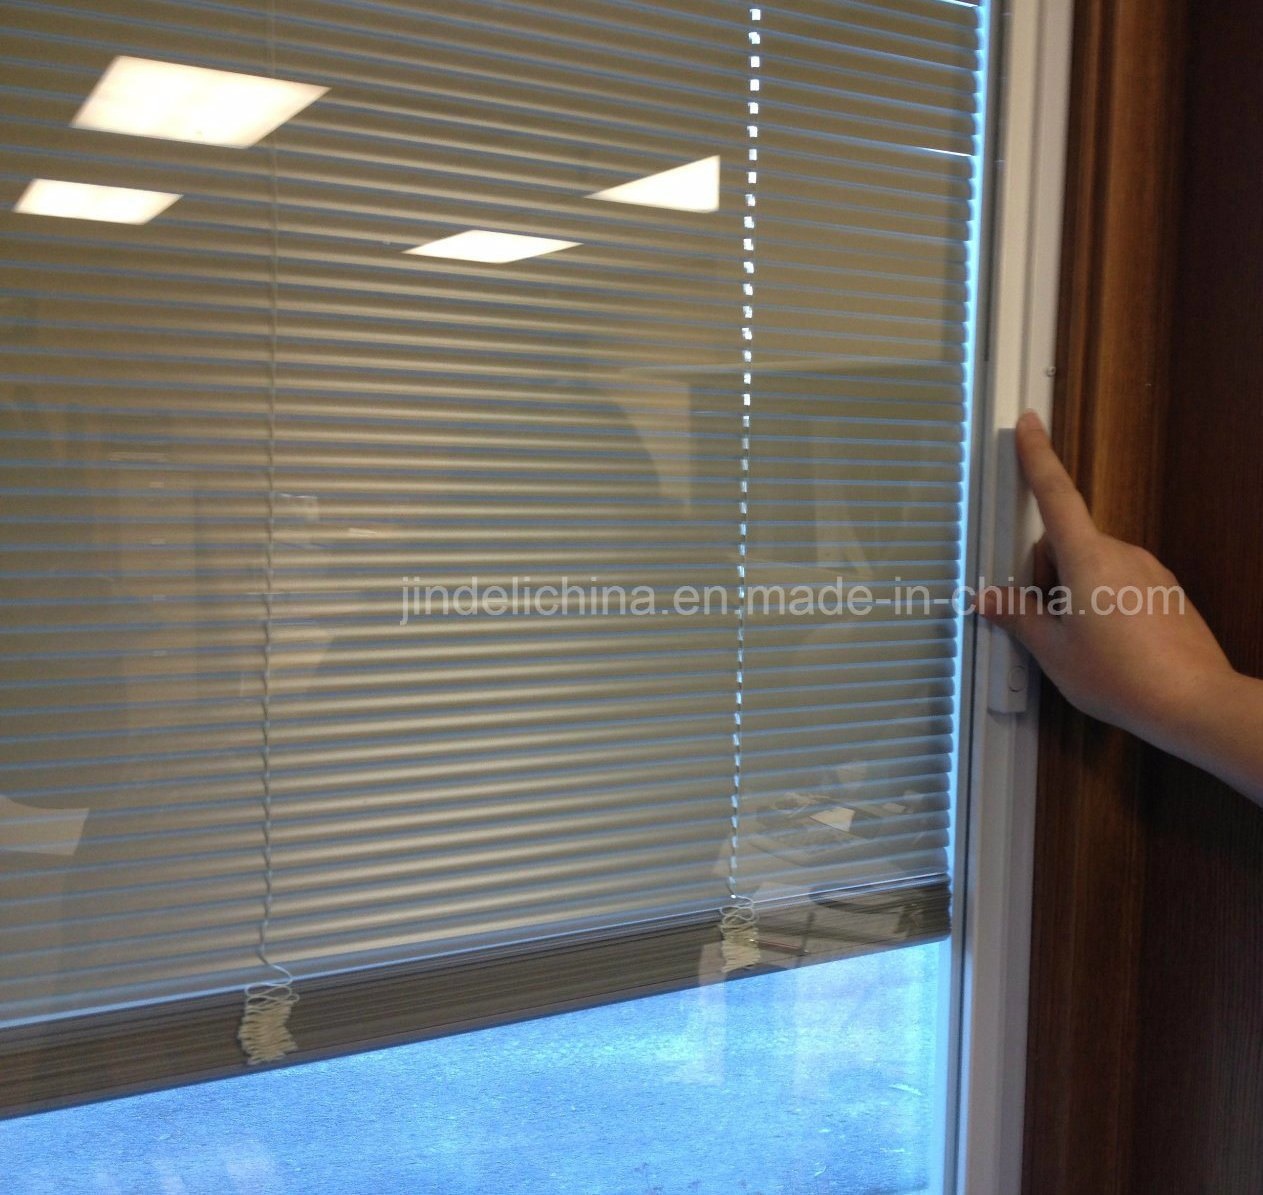 China Insulated Glass Blinds For Double Glazed Doors Windows China